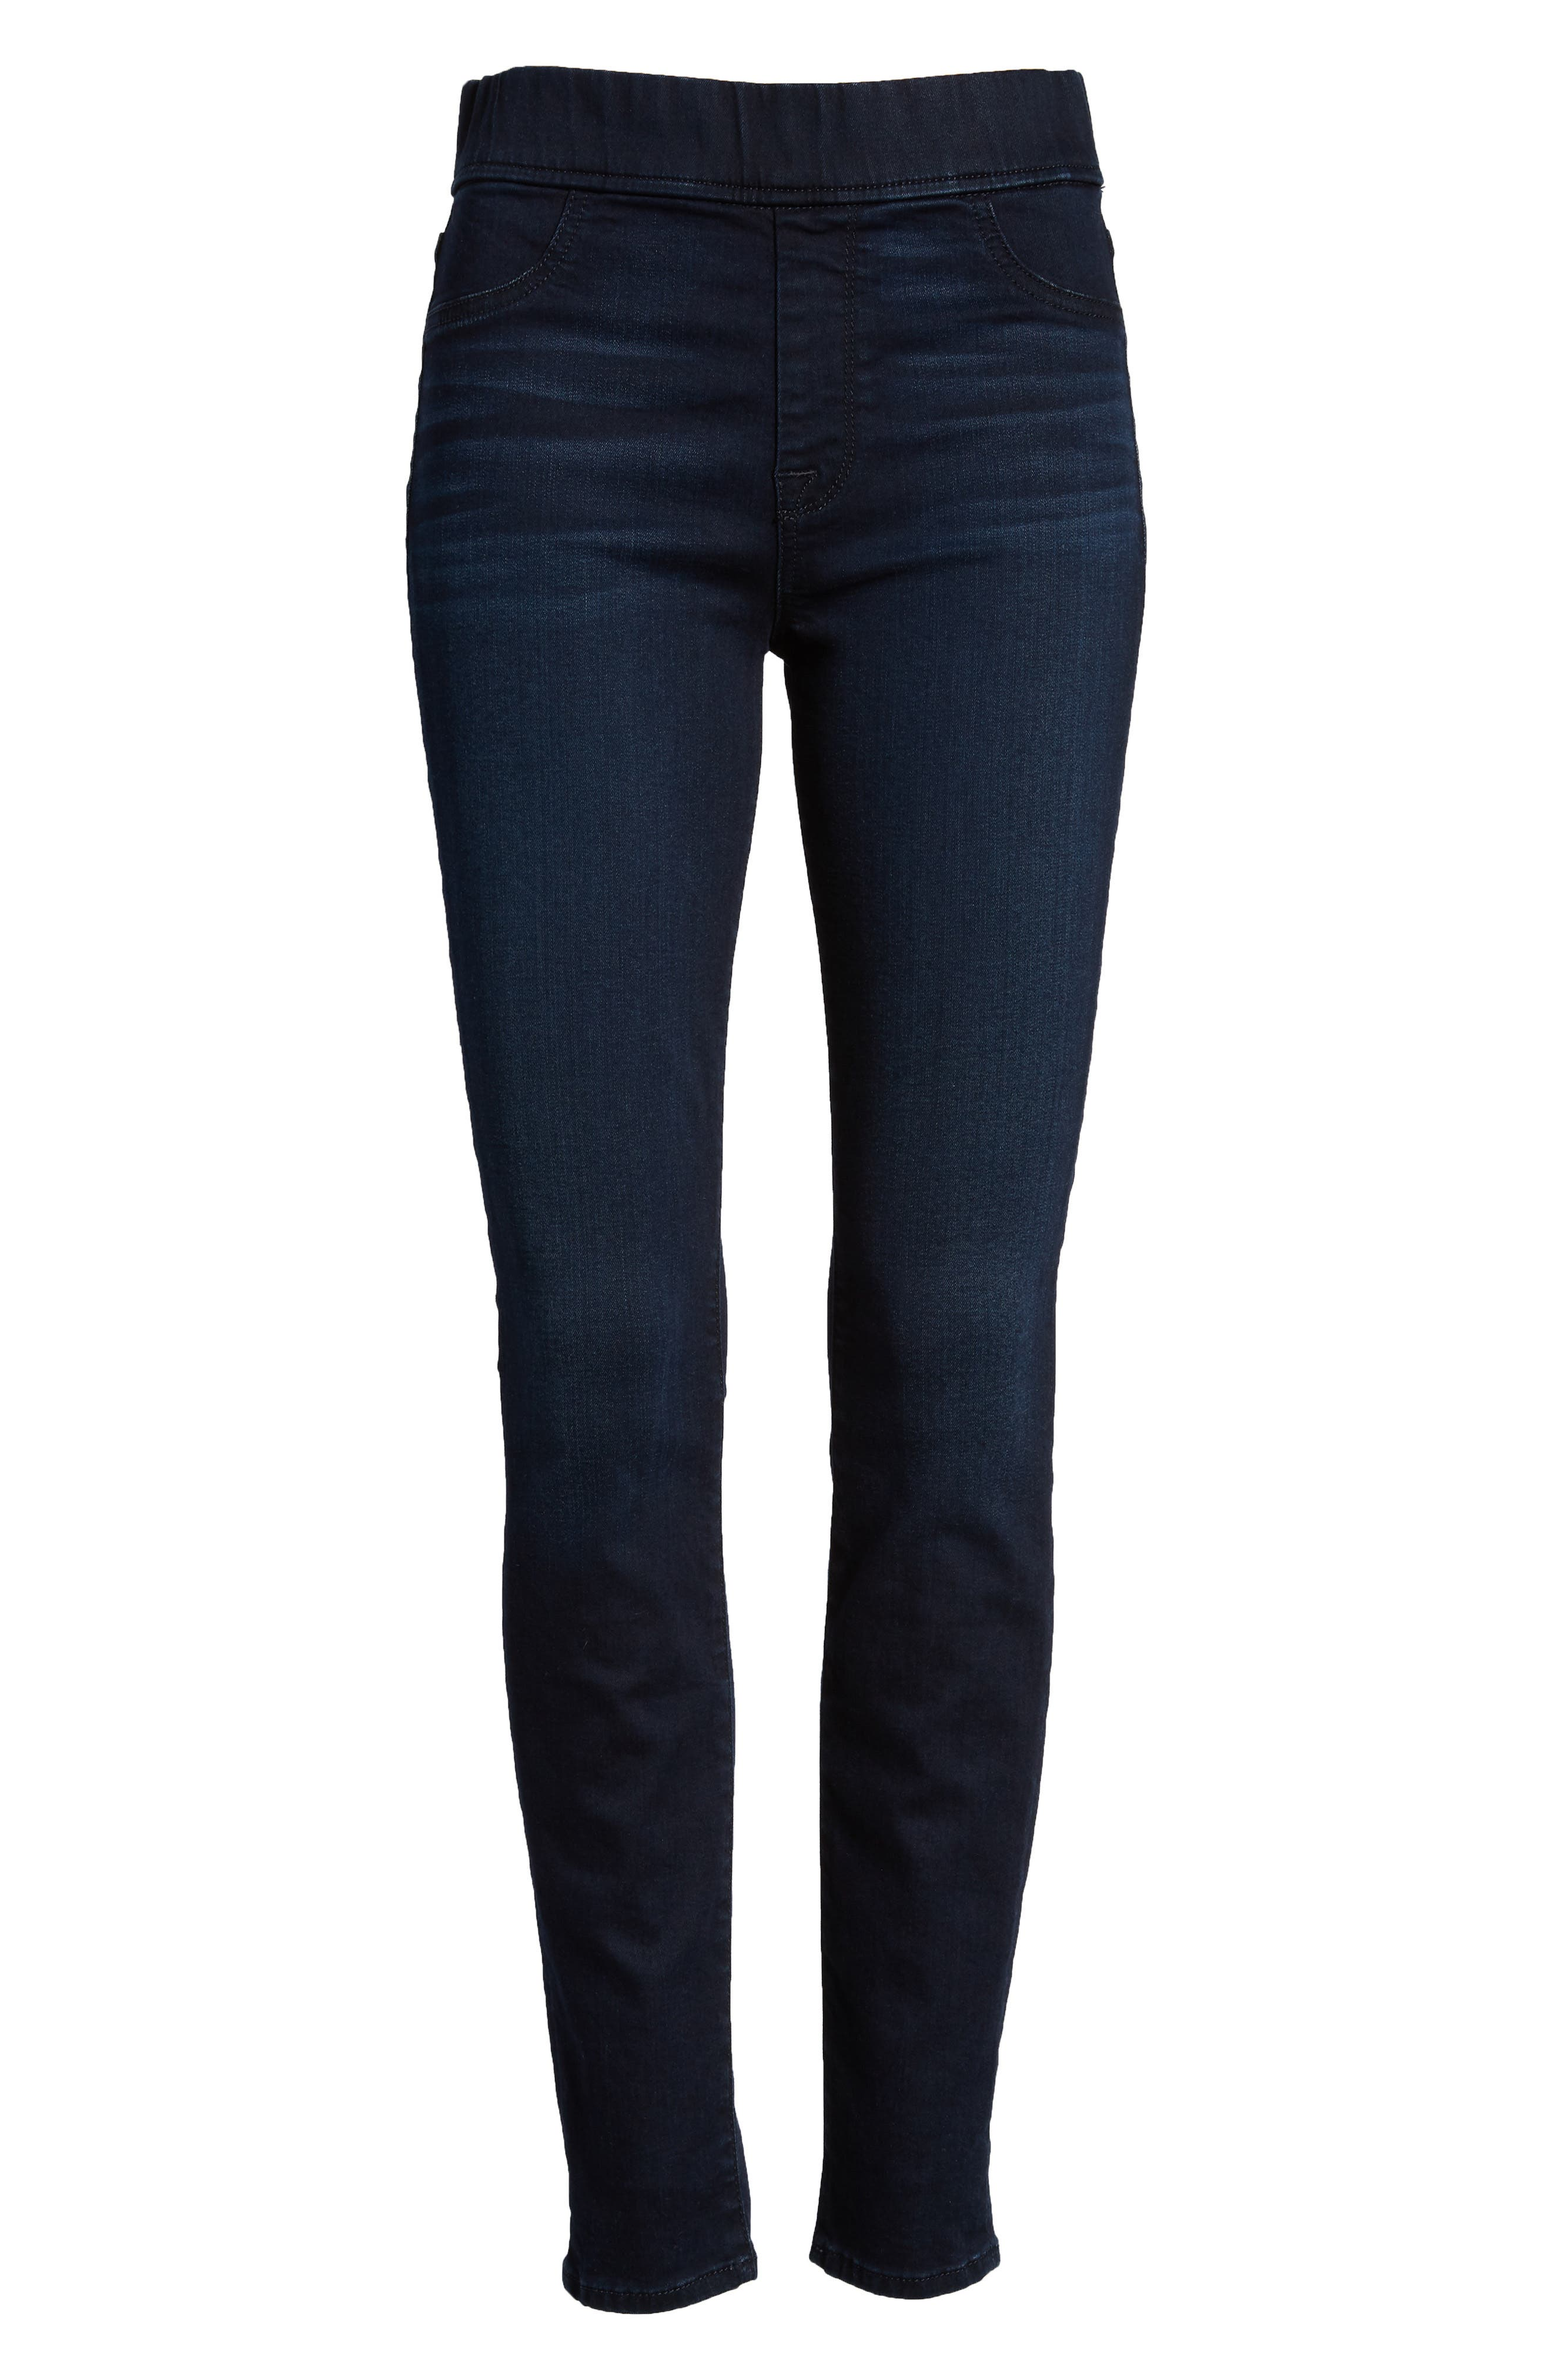 Comfort Skinny Denim Leggings,                             Alternate thumbnail 7, color,                             RICHE TOUCH BLUE/BLACK